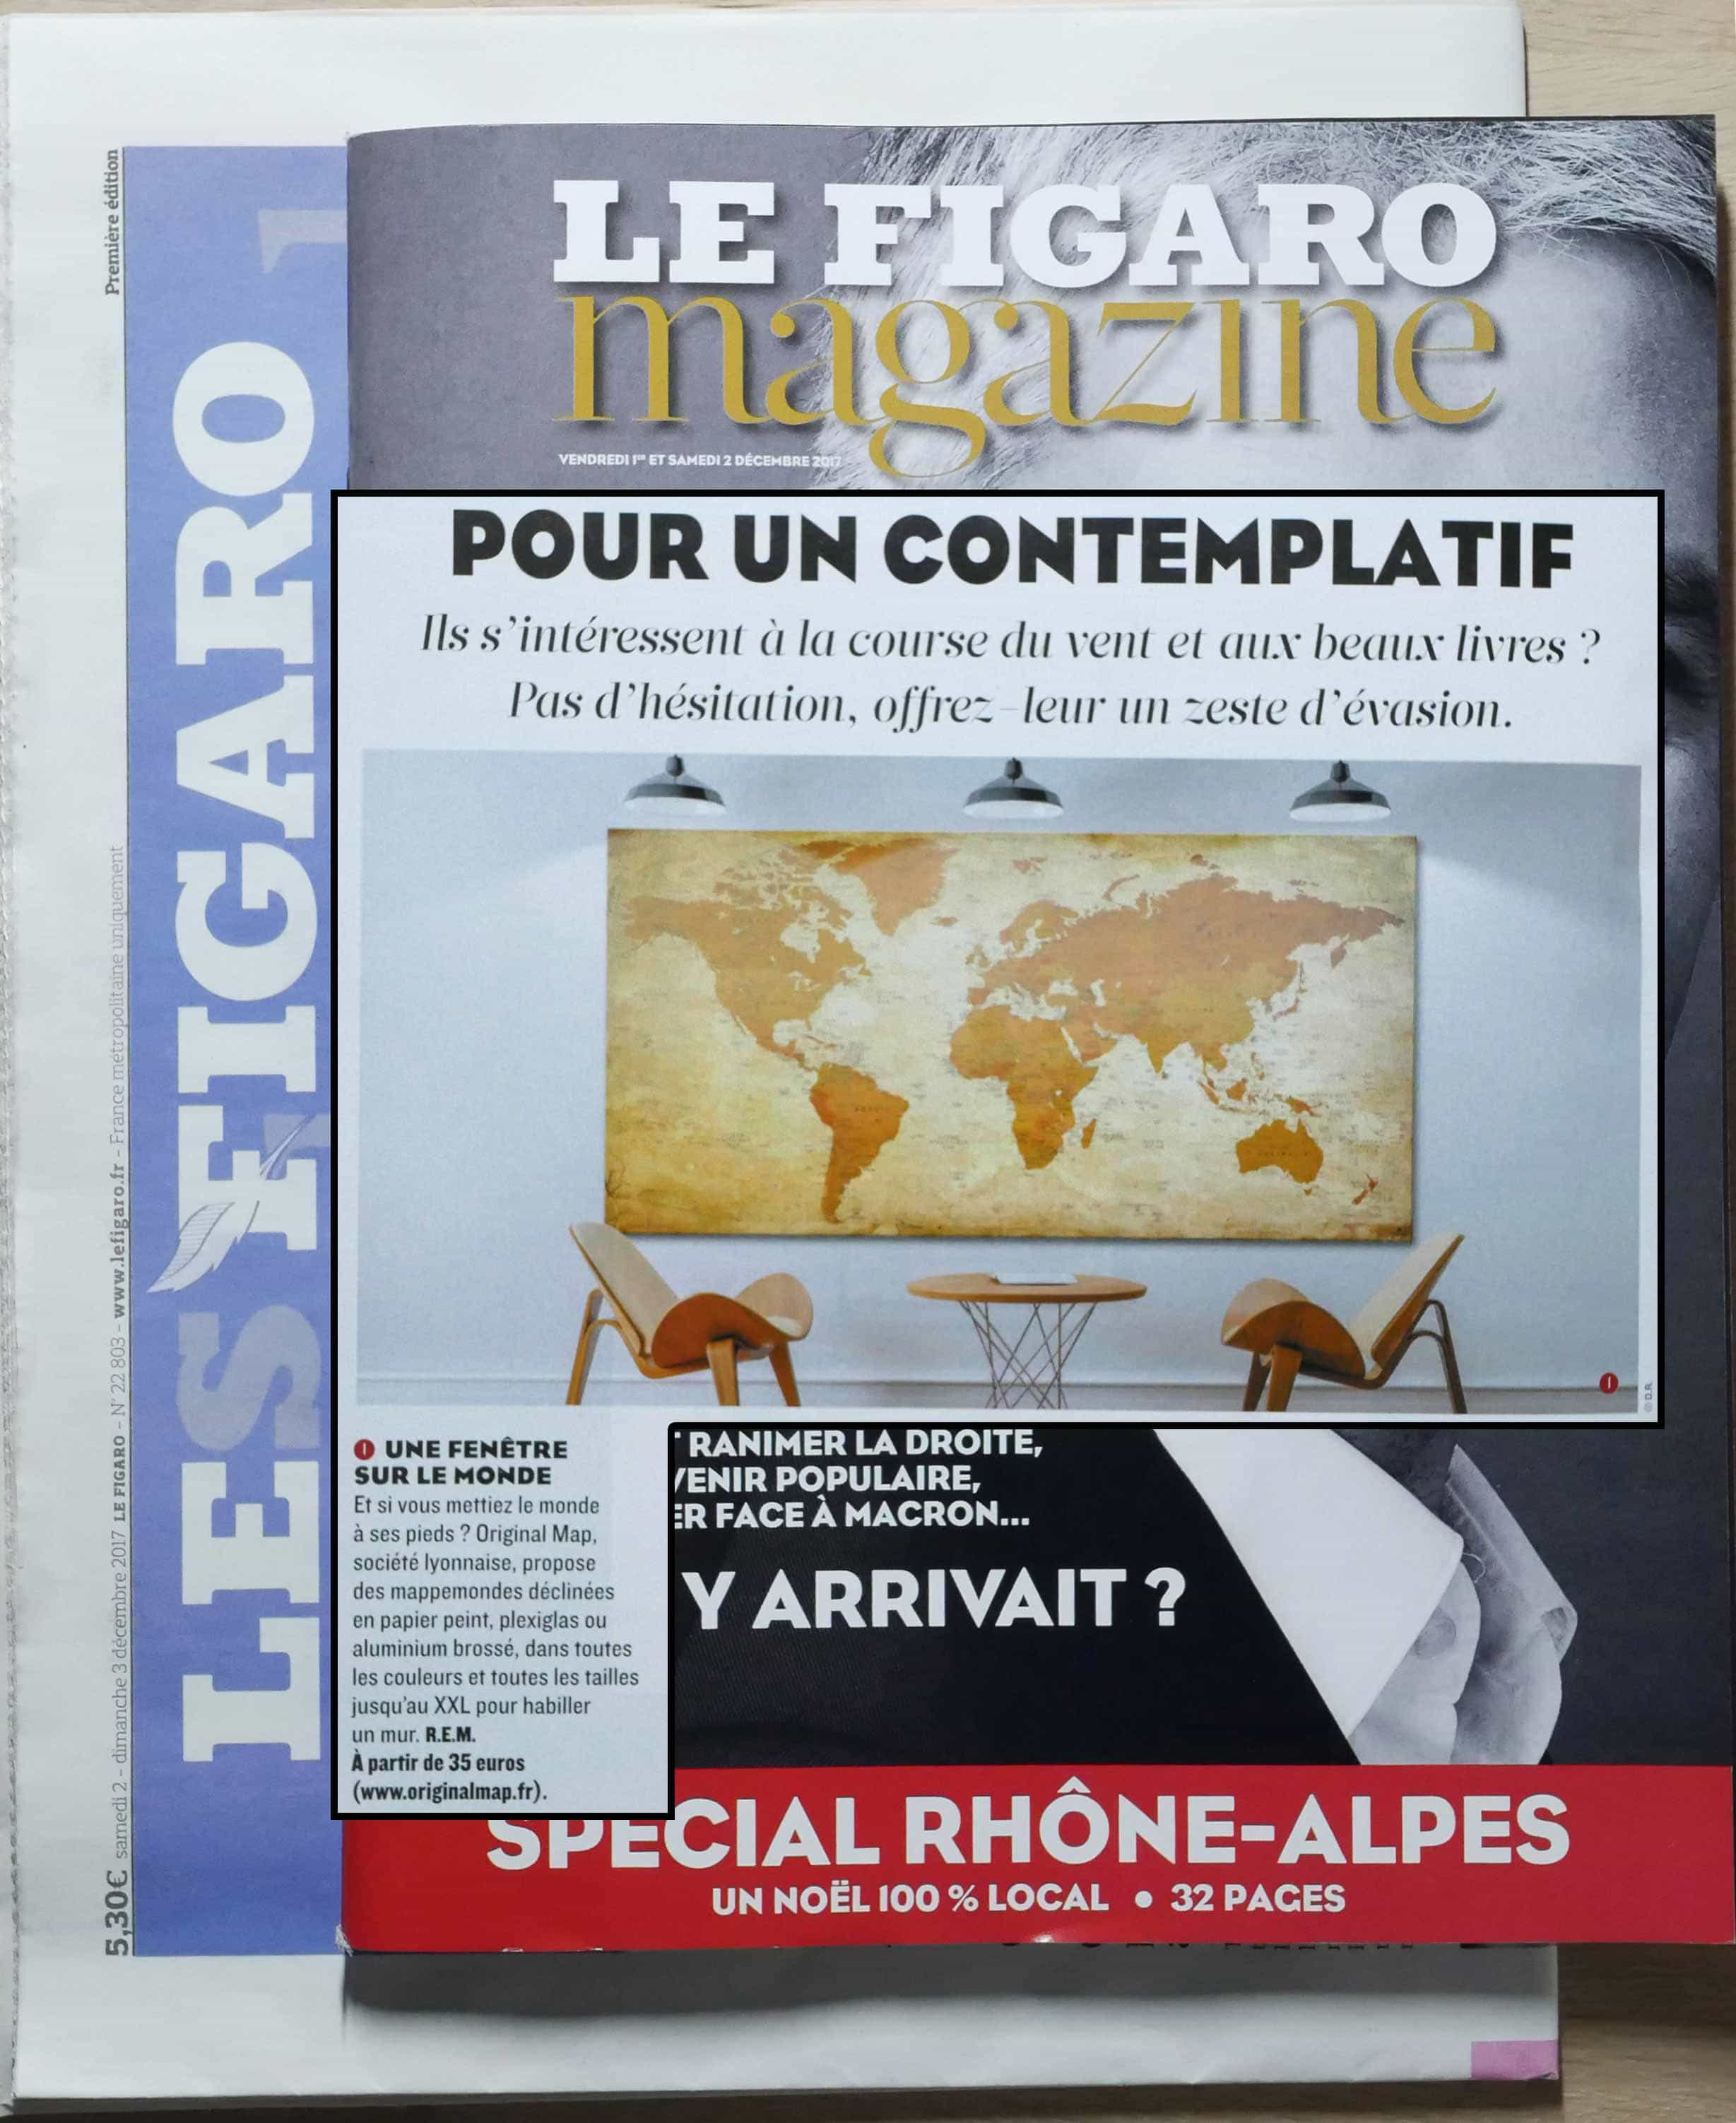 ORIGINAL MAP - FIGARO MAGAZINE